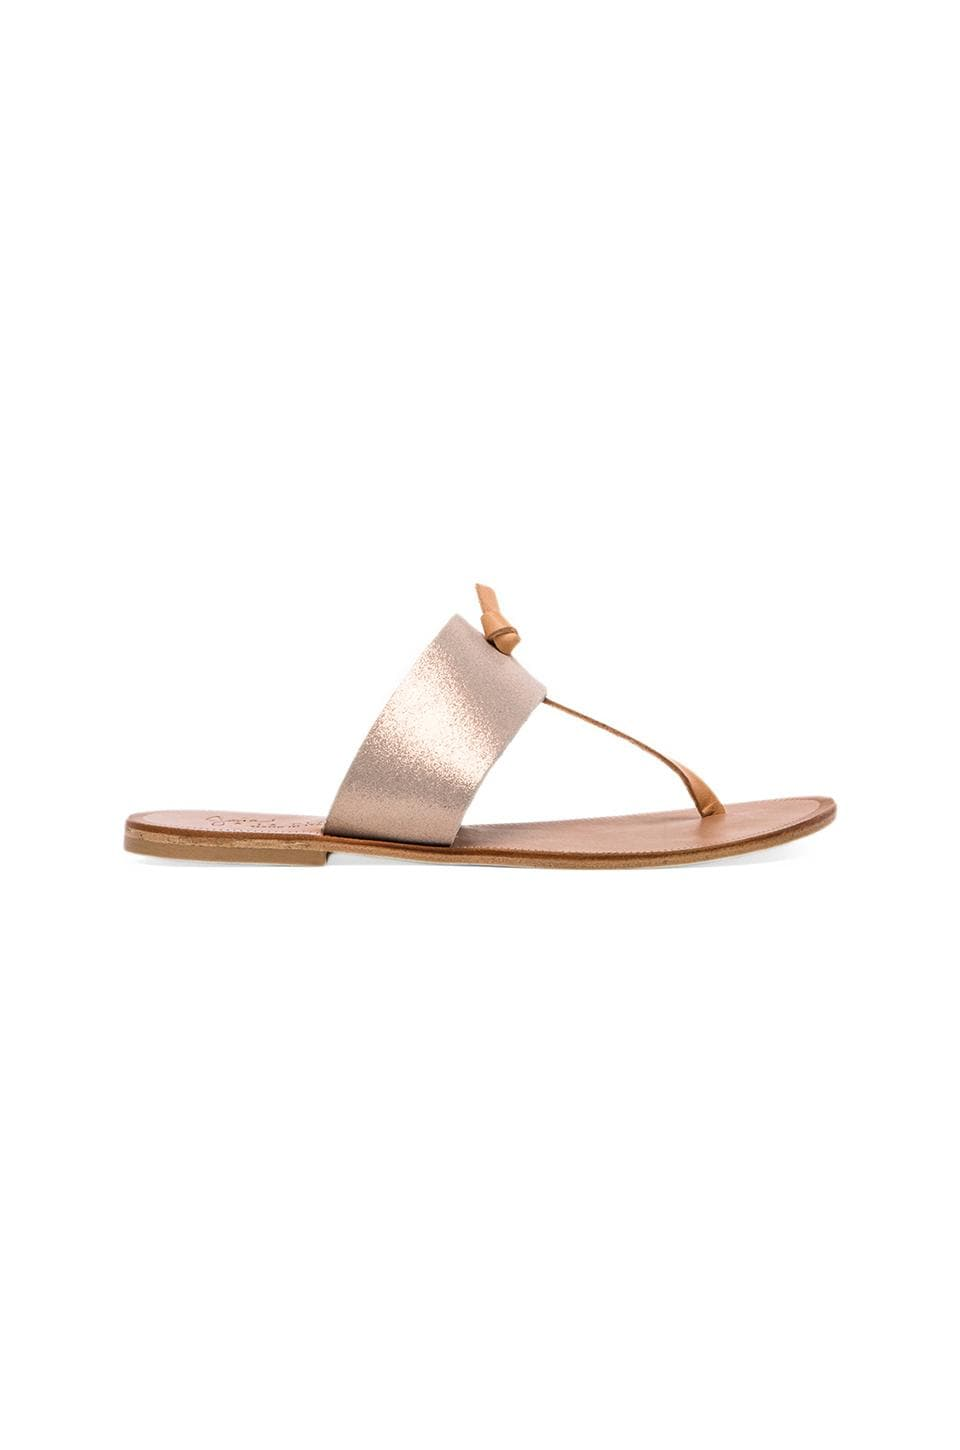 Joie Nice Sandal in Rose Gold